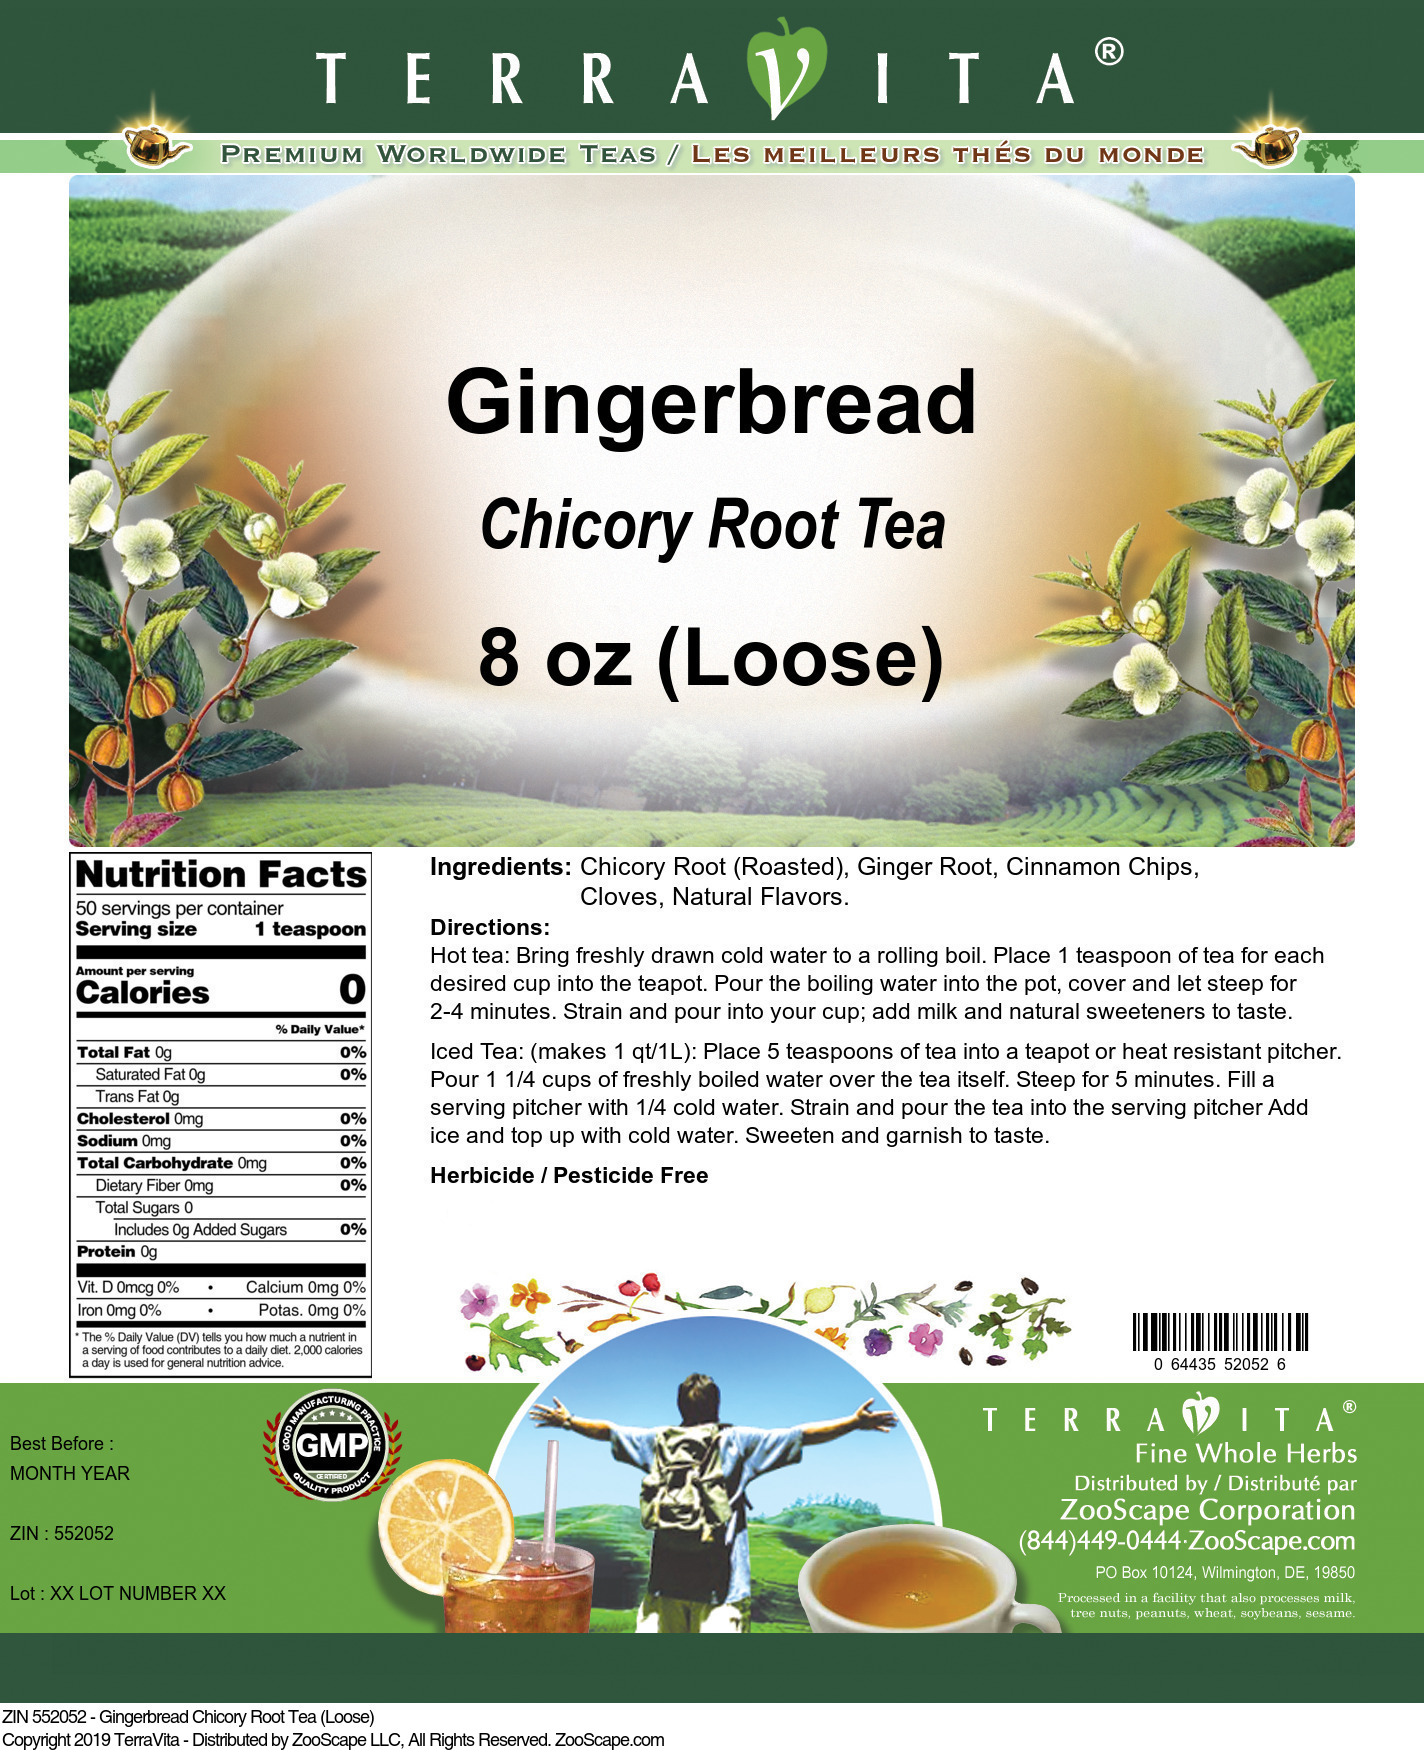 Gingerbread Chicory Root